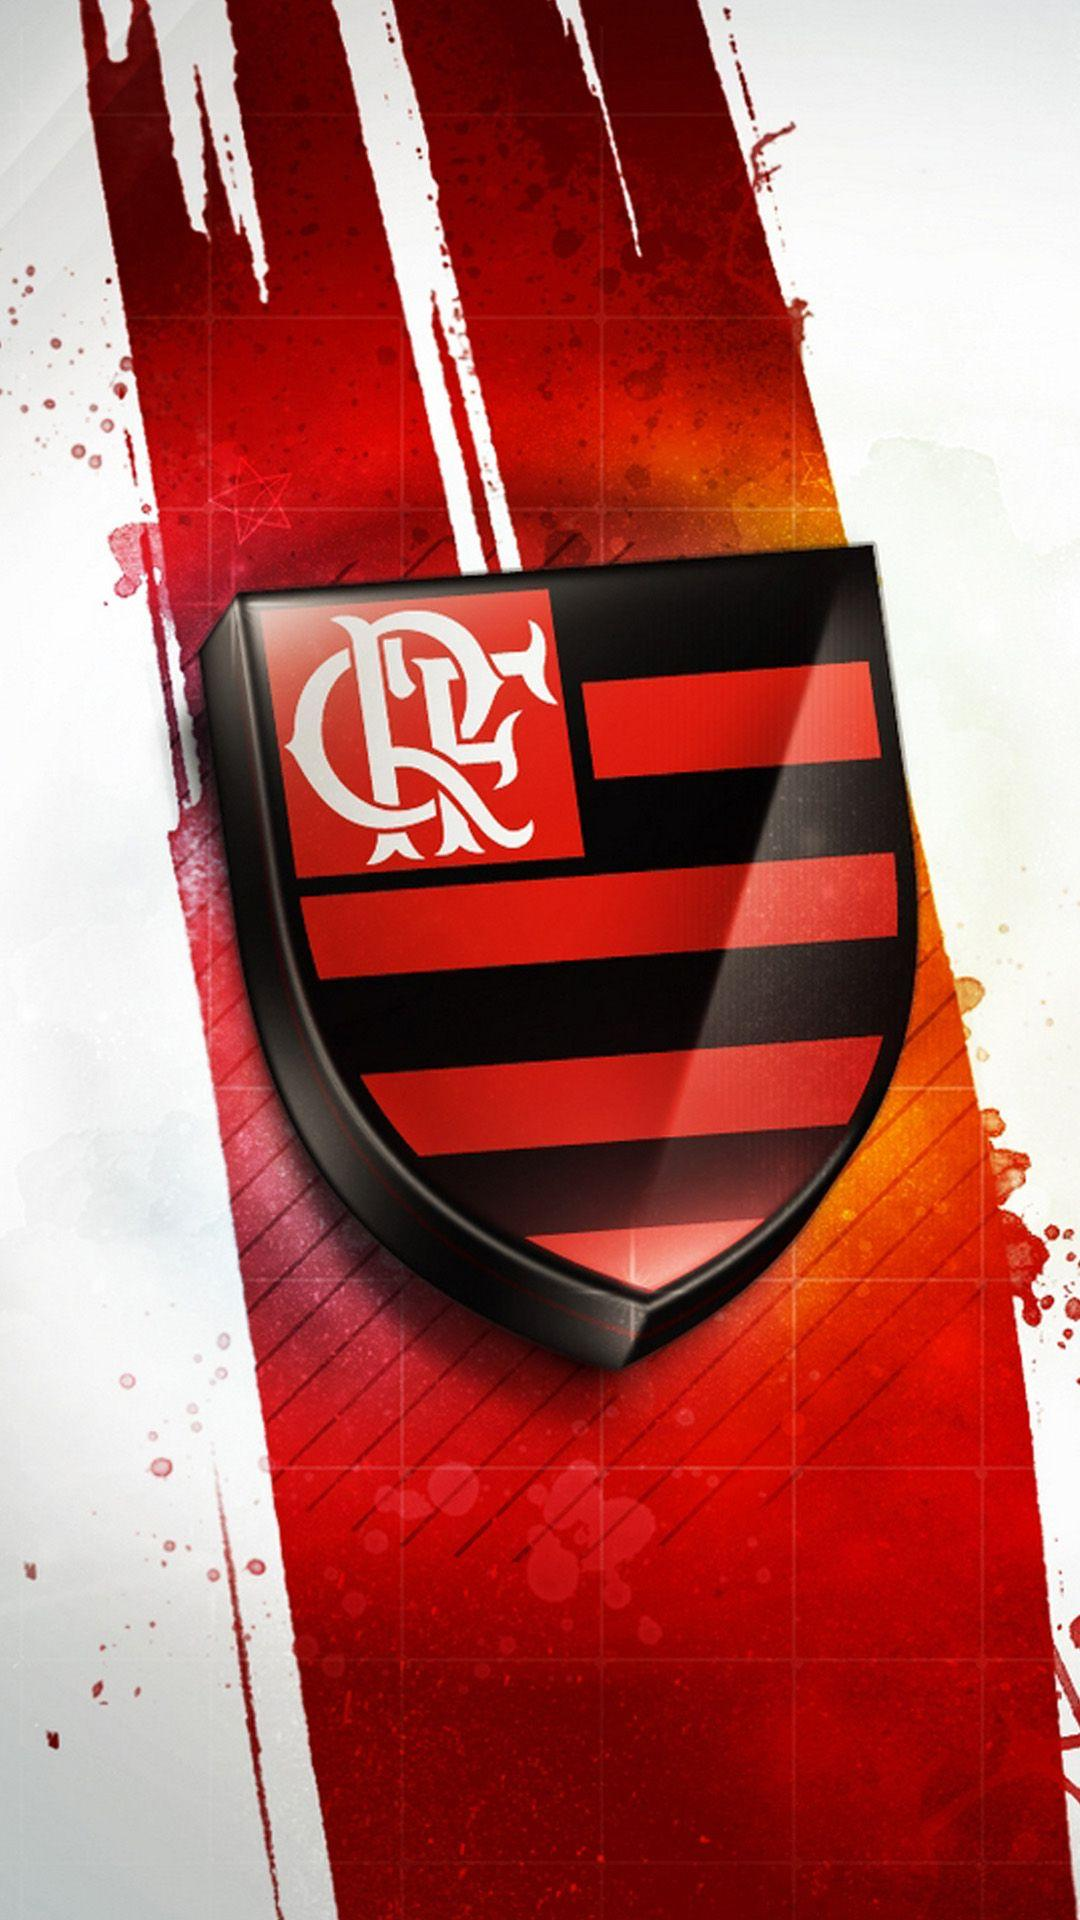 Flamengo 01 Samsung Wallpapers, Samsung Galaxy S5, Galaxy S4